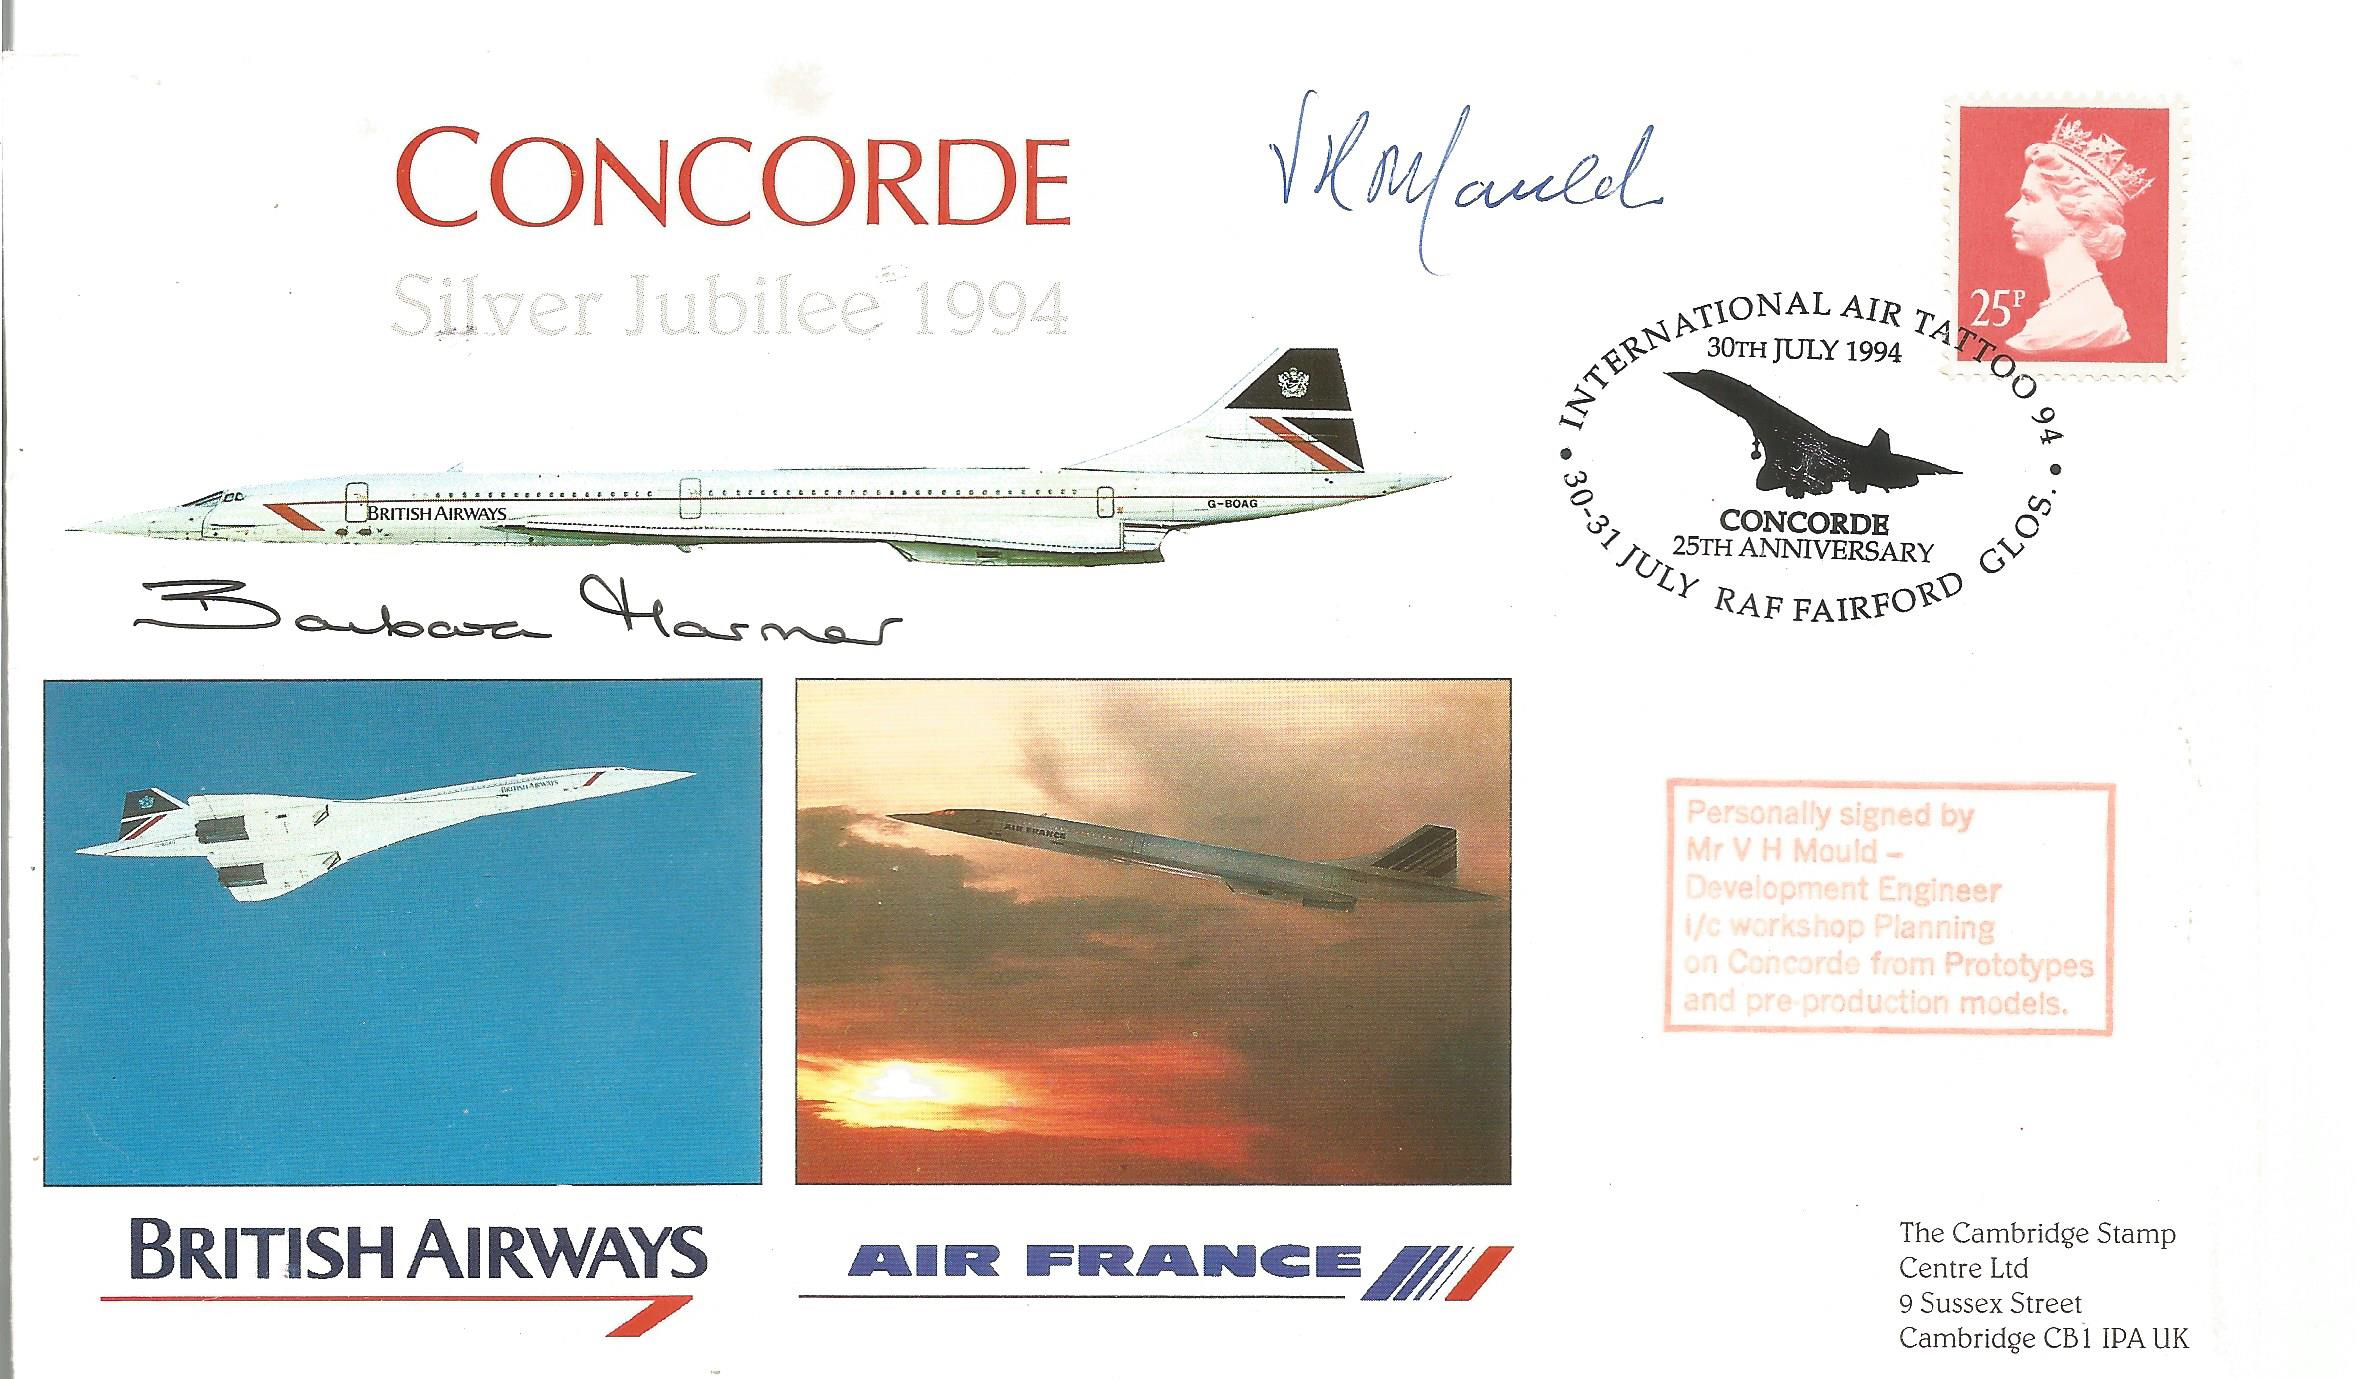 Concorde Barbara Harmer and Mr V H Mould signed Concorde Silver Jubilee 1994 FDC PM International